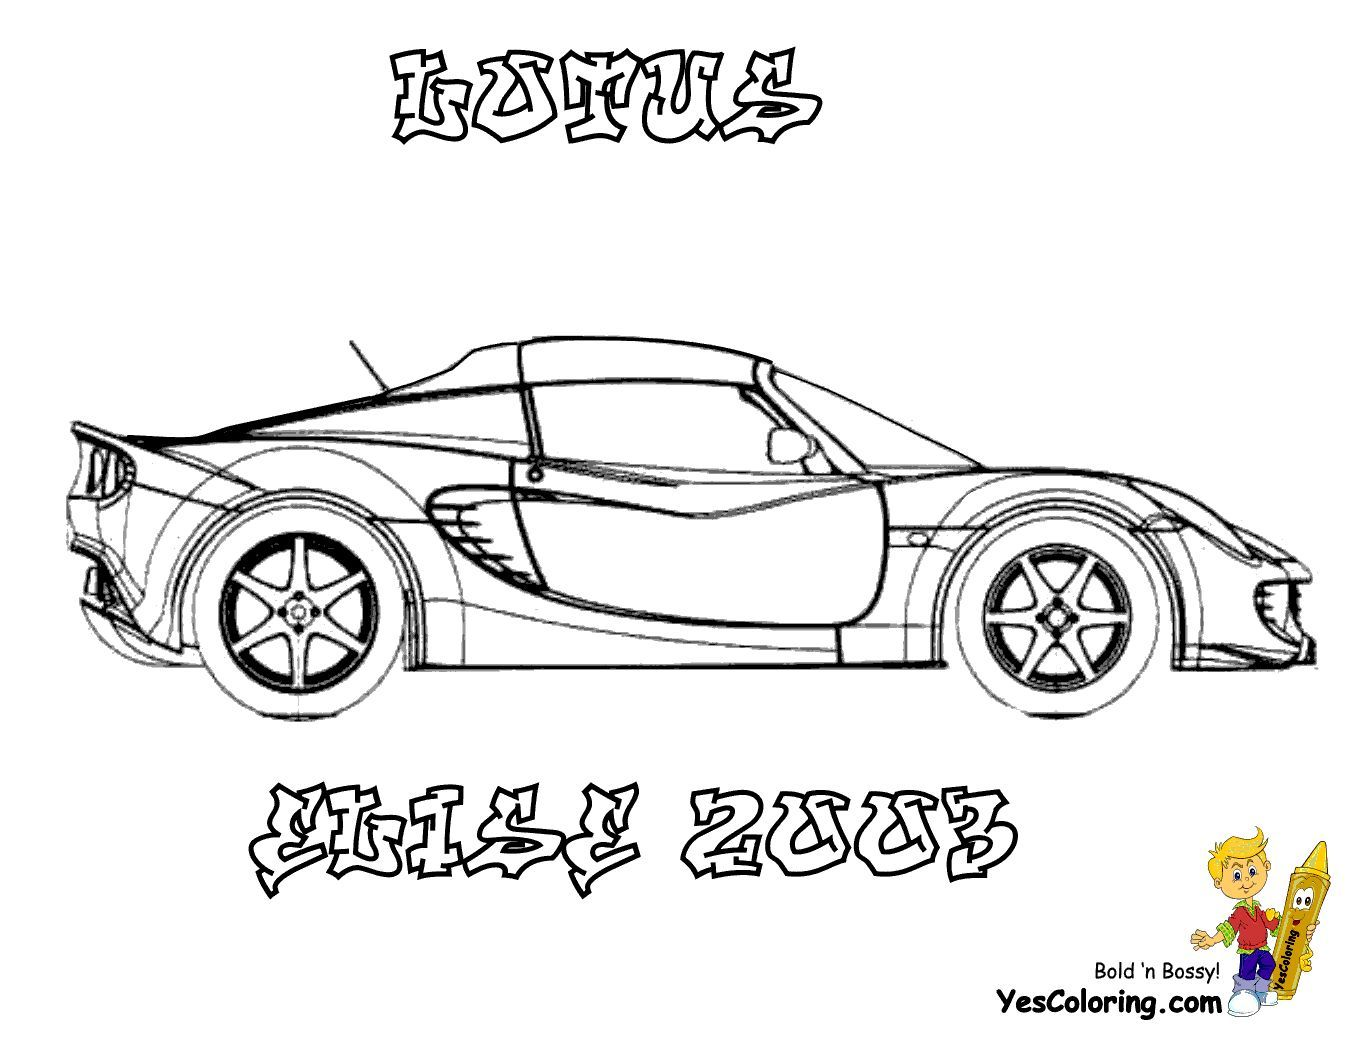 Print Out This Lotus Elise Car Printable You Foolin Tell Other Coloring Kids Your Eyeballs Found Cars Coloring Pages Race Car Coloring Pages Drag Cars